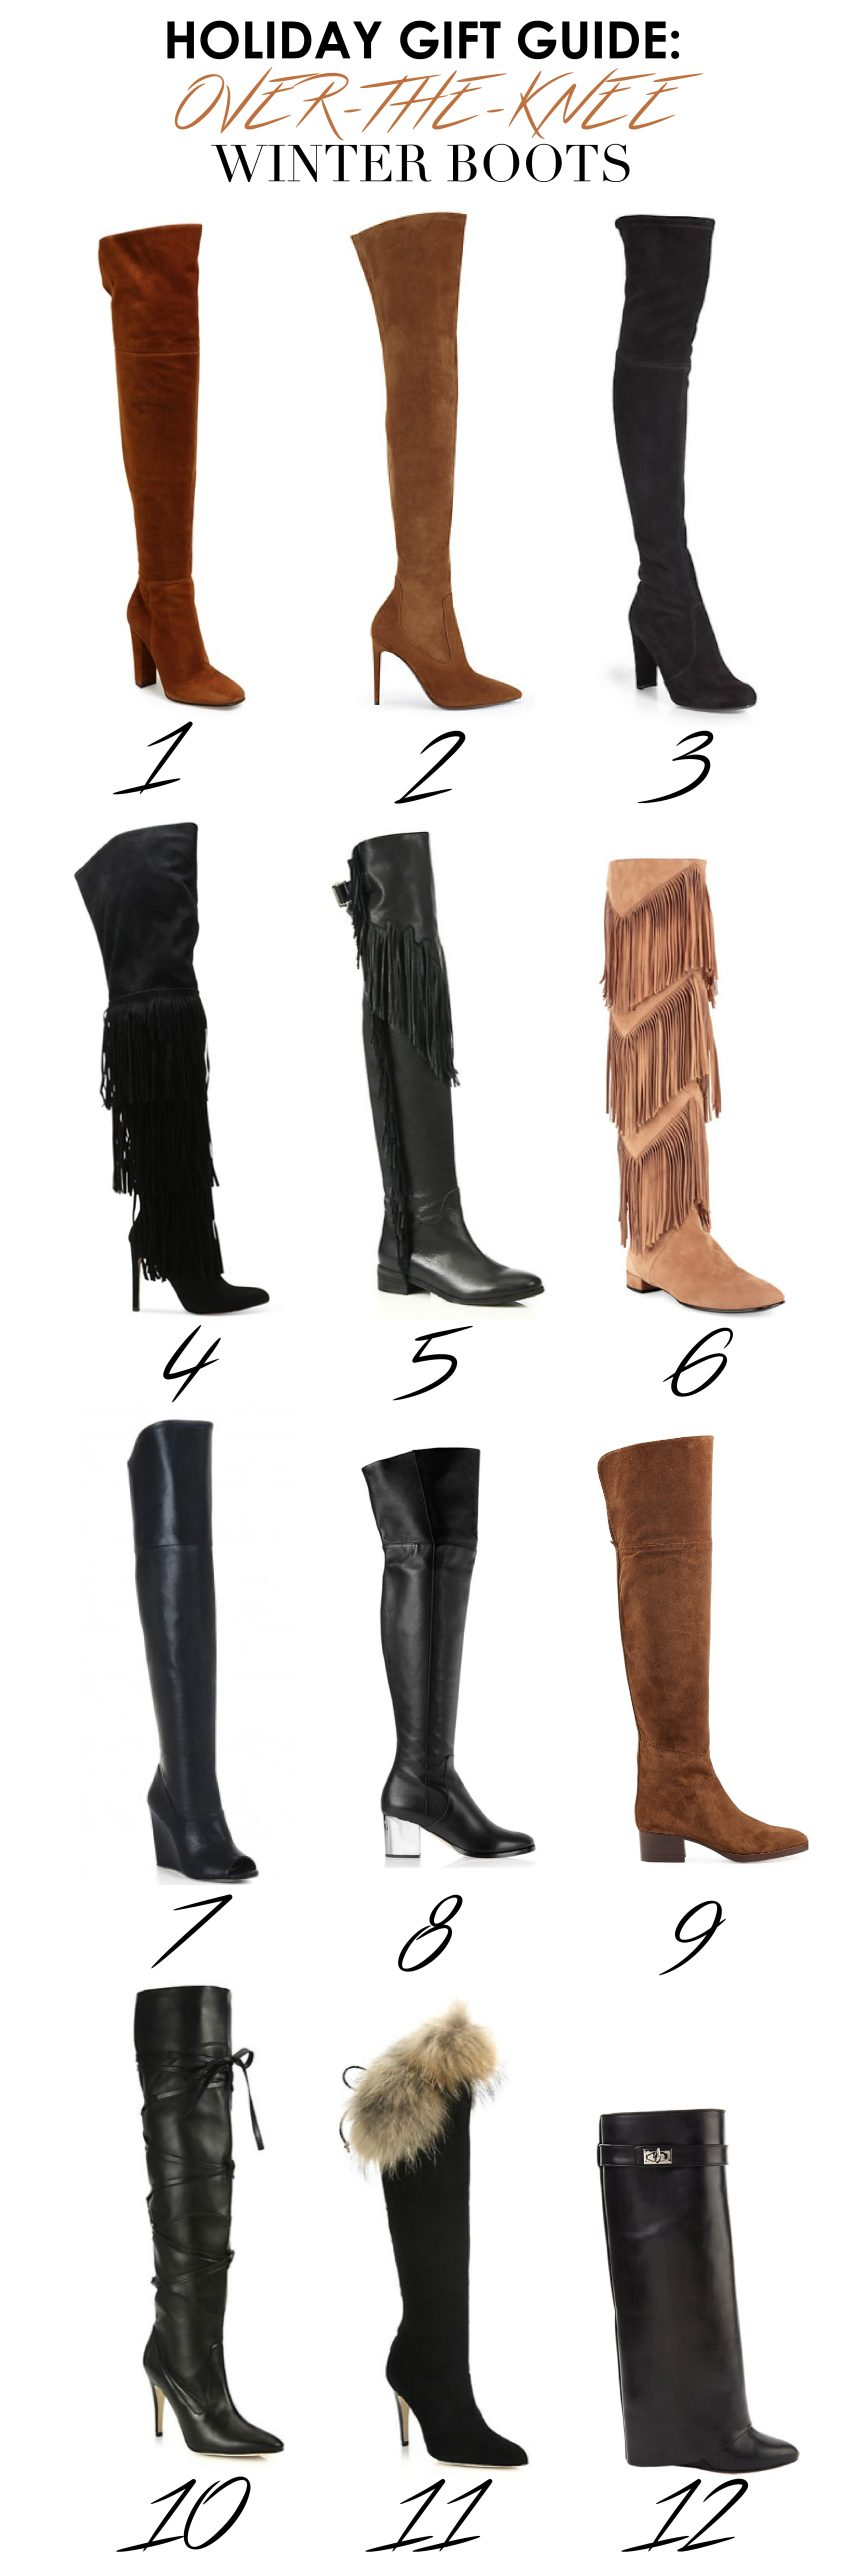 Holiday Gift Guide: Over-the-knee Winter Boots!